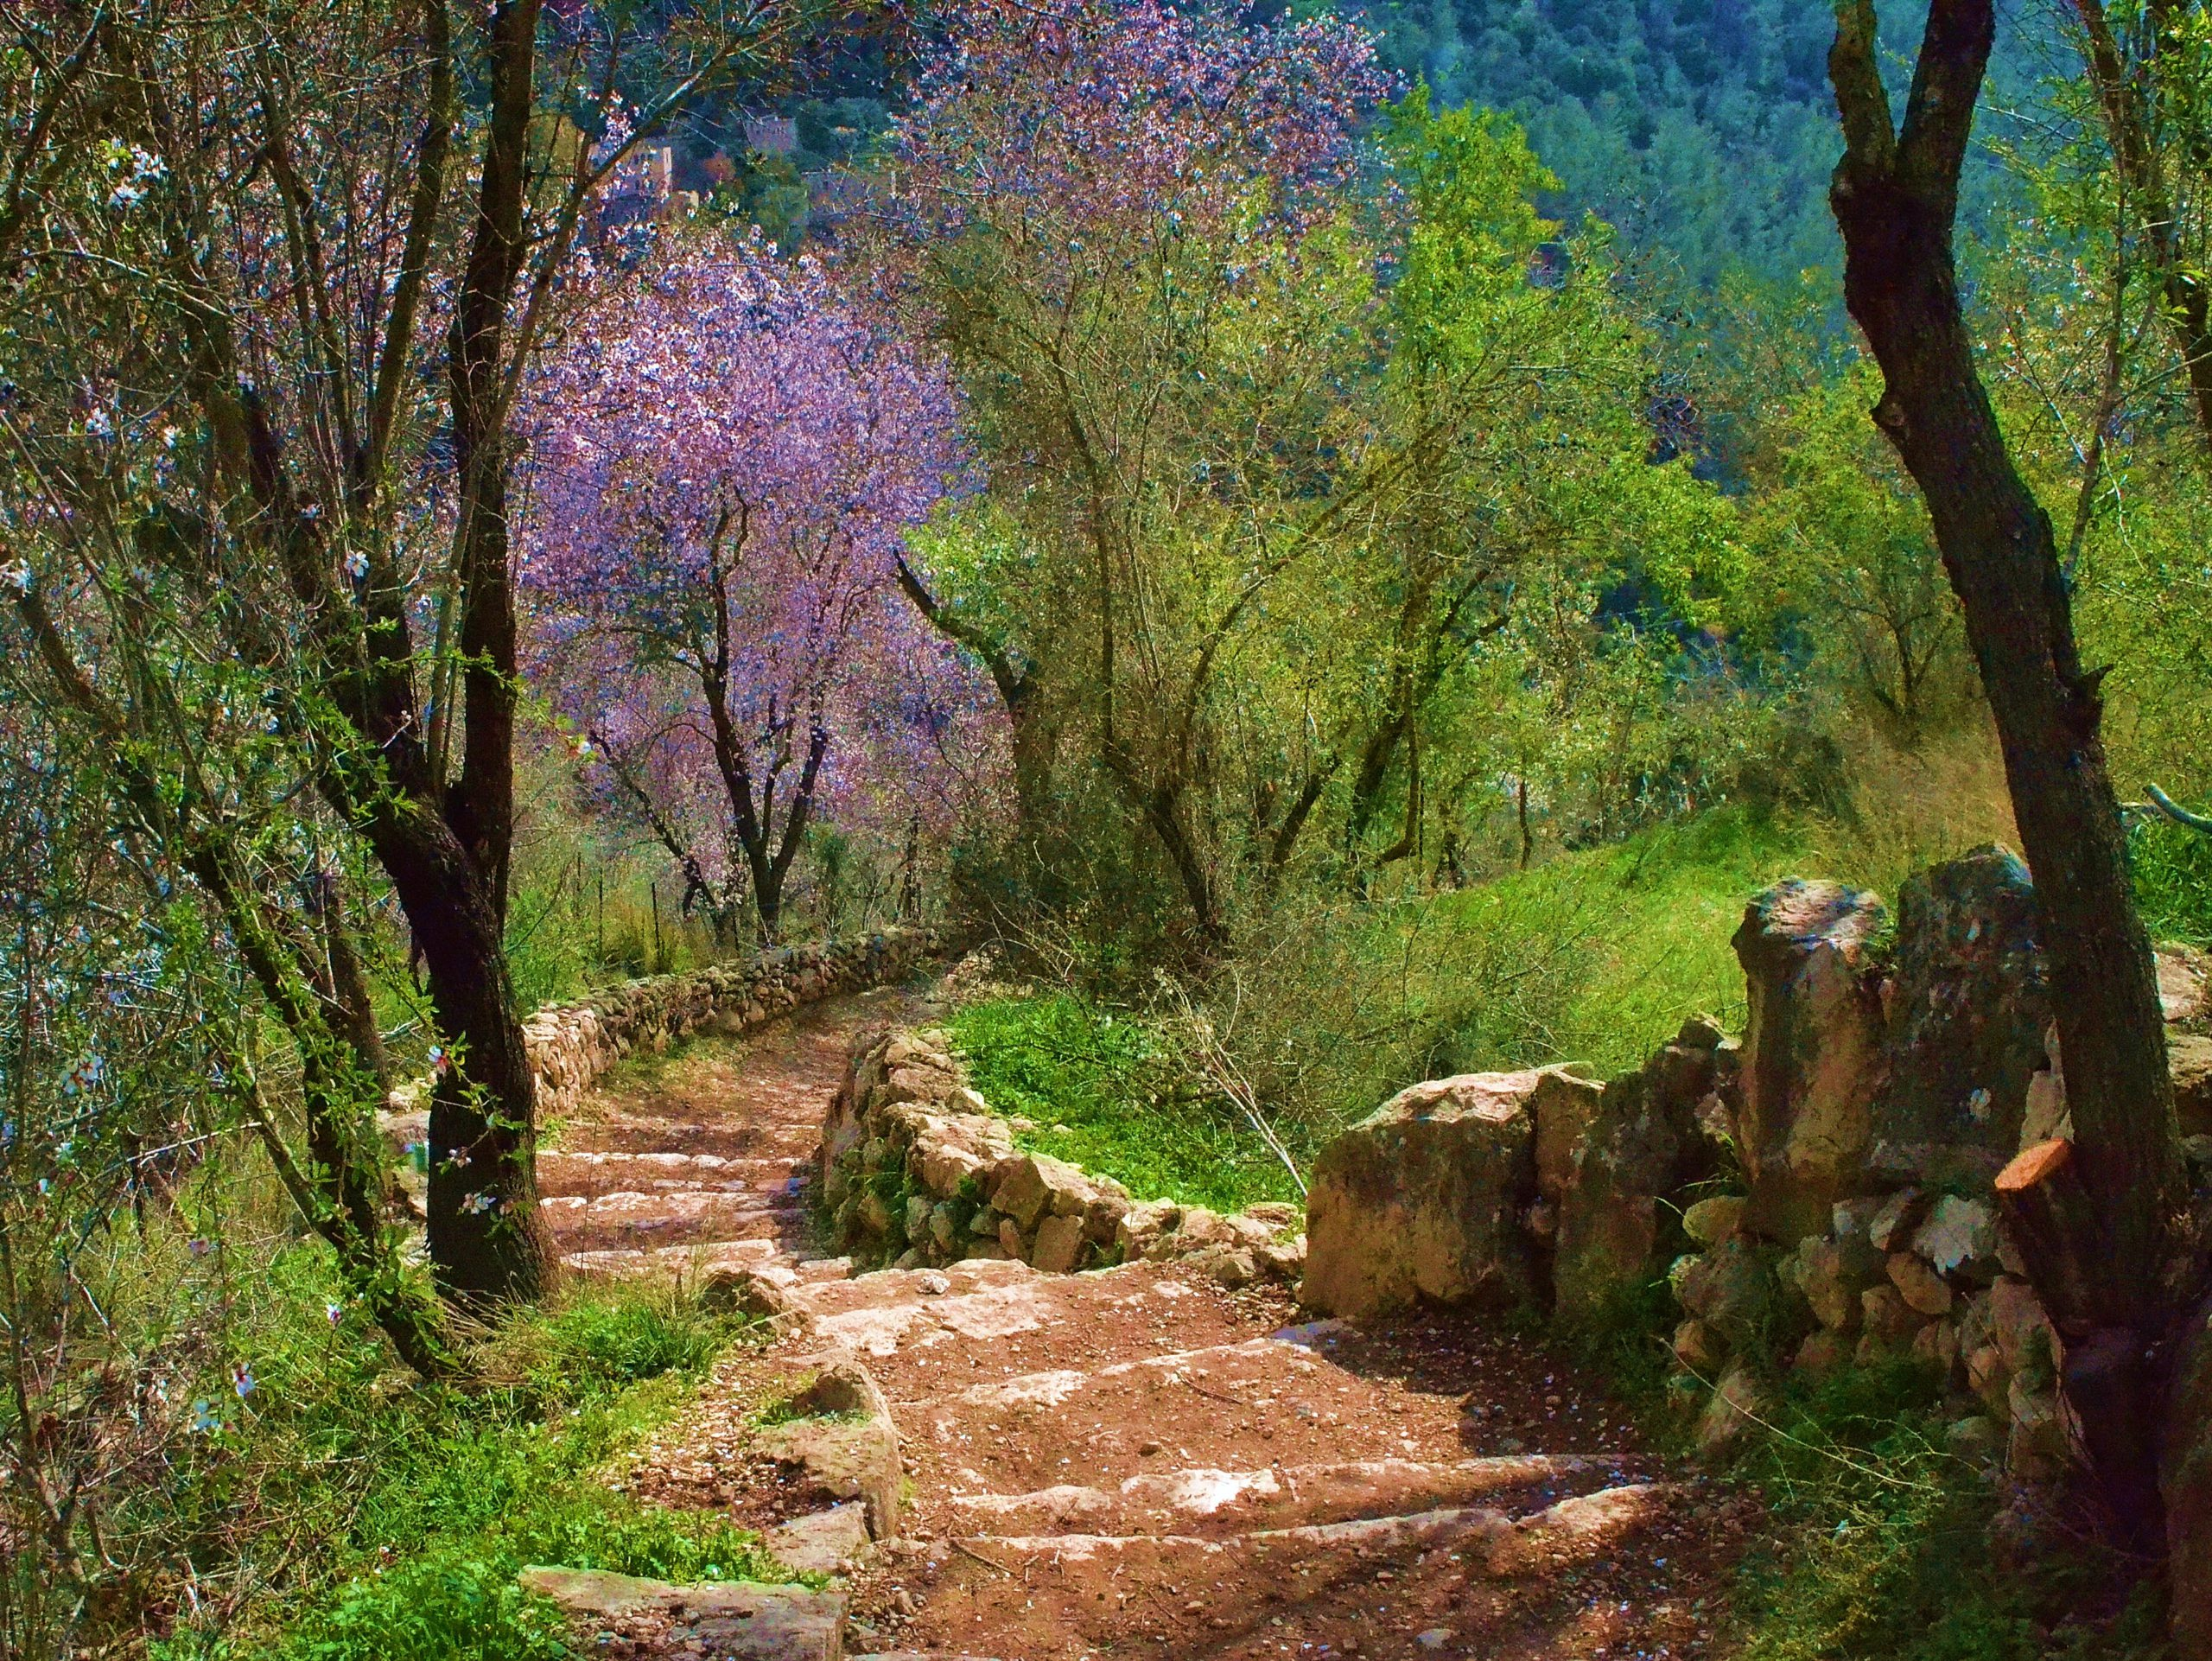 LAUREL FELDMAN, ALMOND TREE'S BLESSINGS: As I was walking, I came to a stone-stepped path cutting through the ancient Judean Hills. I stopped to record the glorious sight of blossoming almond trees! The beauty was spectacular, and seeing nature's wonderful sign — the almond blossoms, the birth of a new season — I was elated. There is a path of hope and rebirth. This image invokes to me all the possibilities of hope during tremendous challenges and struggles along life's path. A presence of being here now and a visual wish to all viewers to always be surrounded by almond trees and their sweet-smelling springtime blossoms.